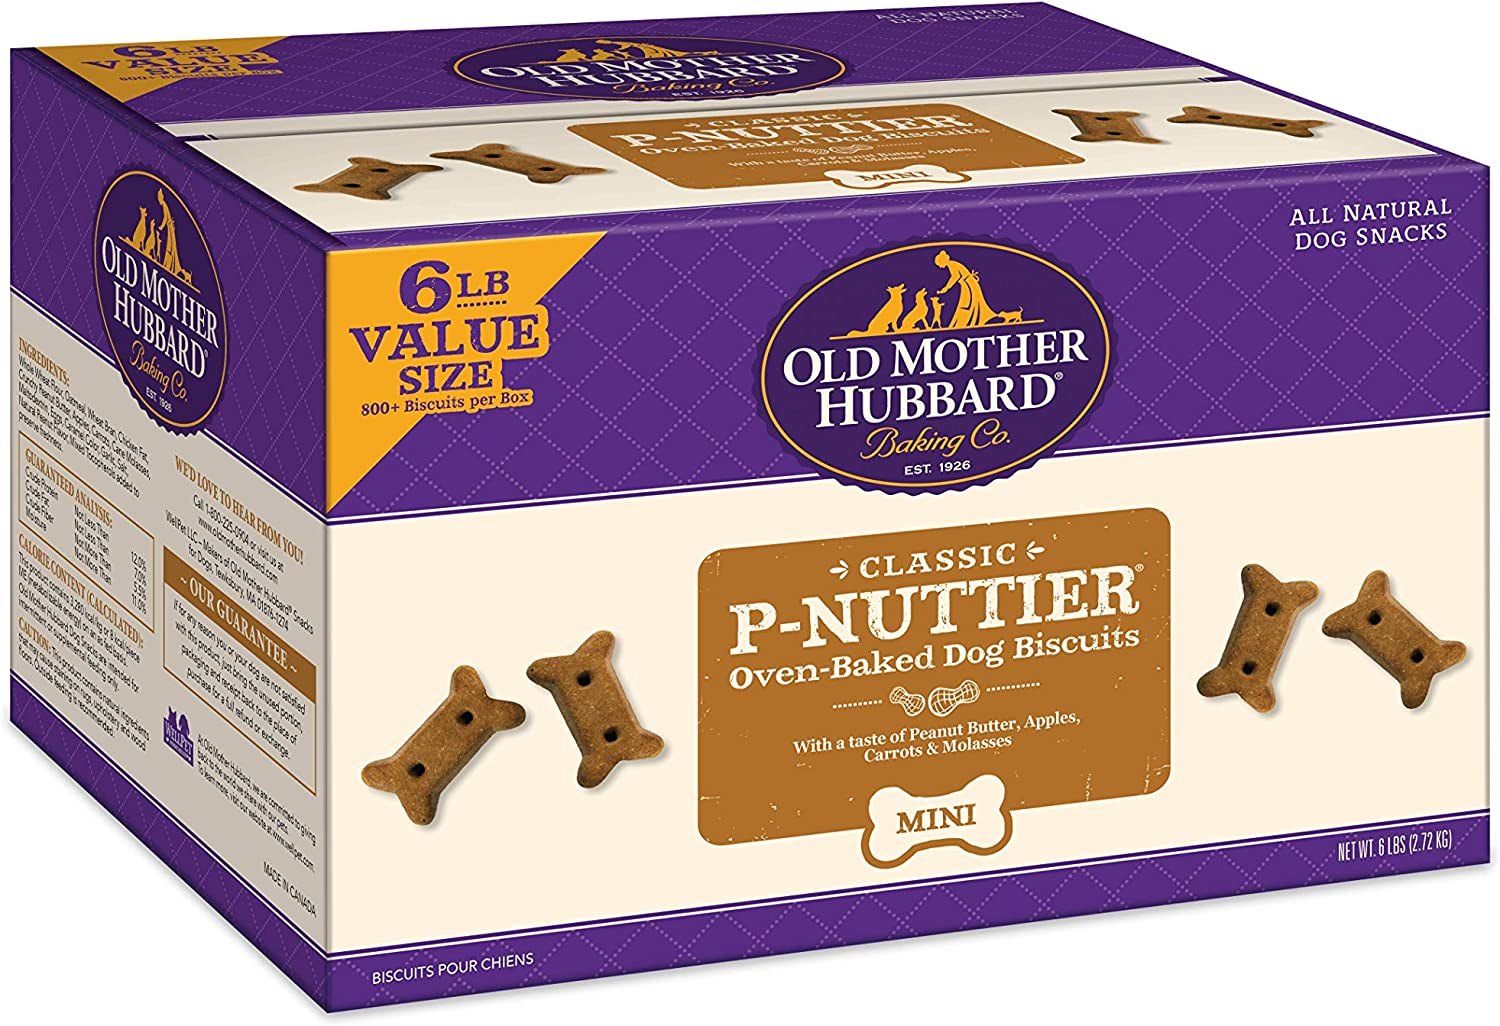 Old Mother Hubbard Classic P-Nuttier Mini Natural Dog Treats